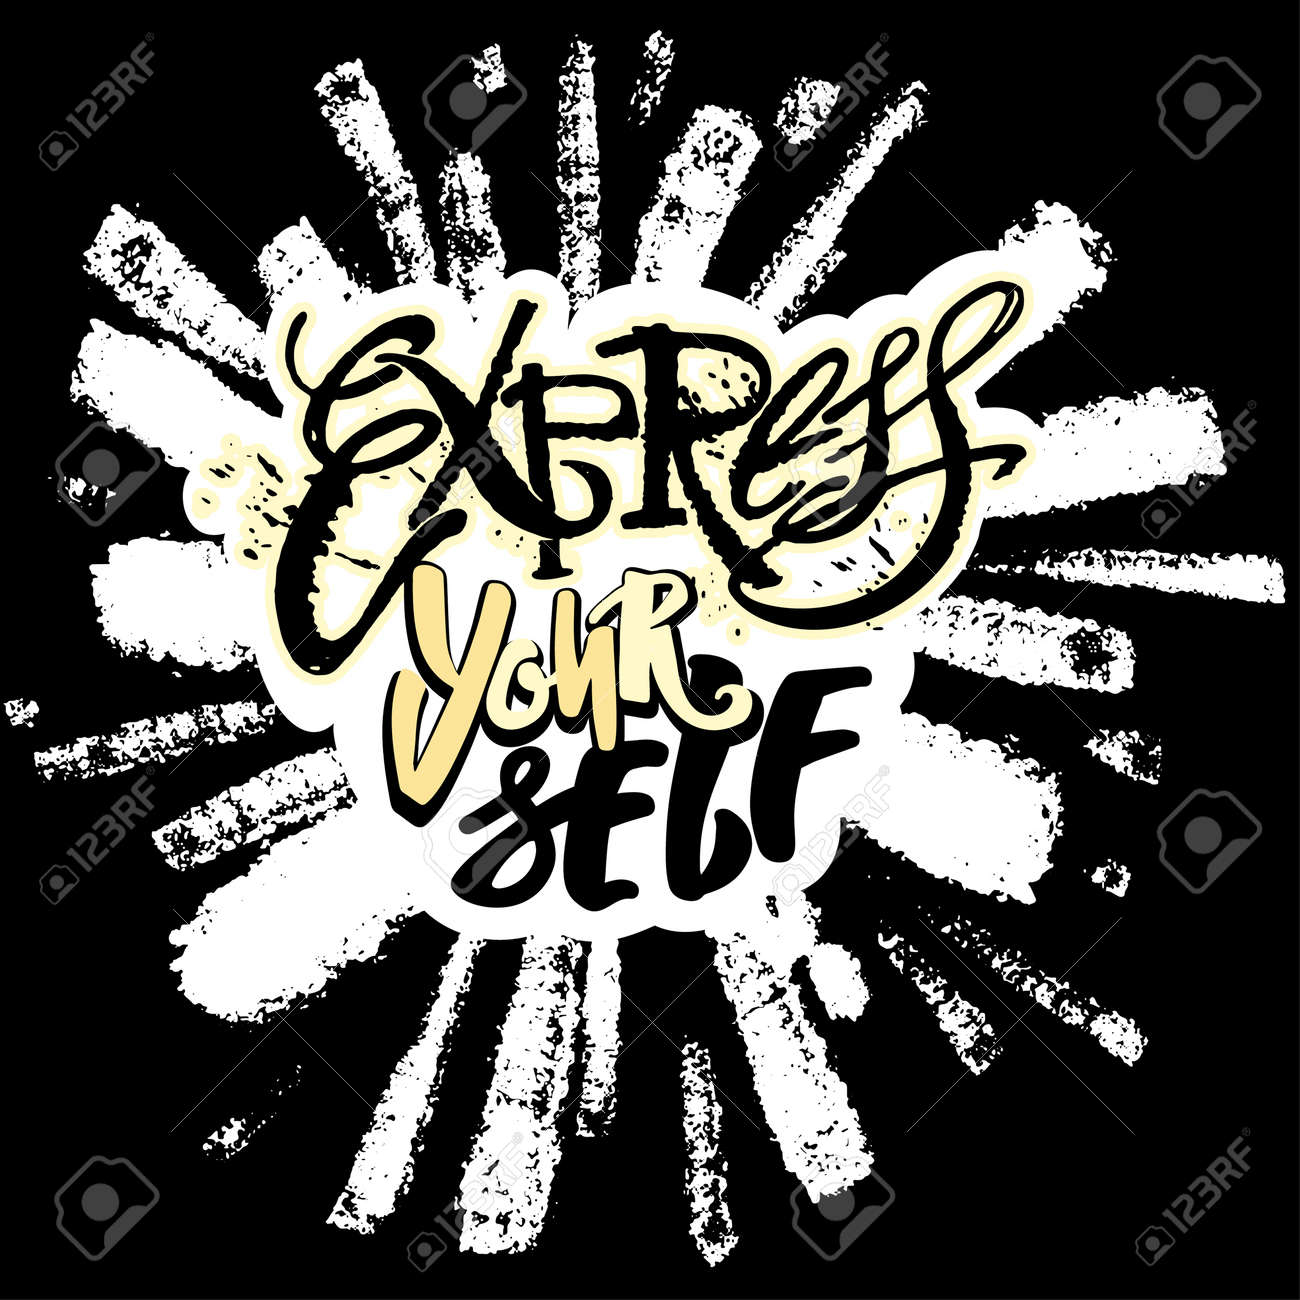 Express yourselflieve and do create art motivatorhand lettering express yourselflieve and do create art motivatorhand lettering vector illustration poster solutioingenieria Images